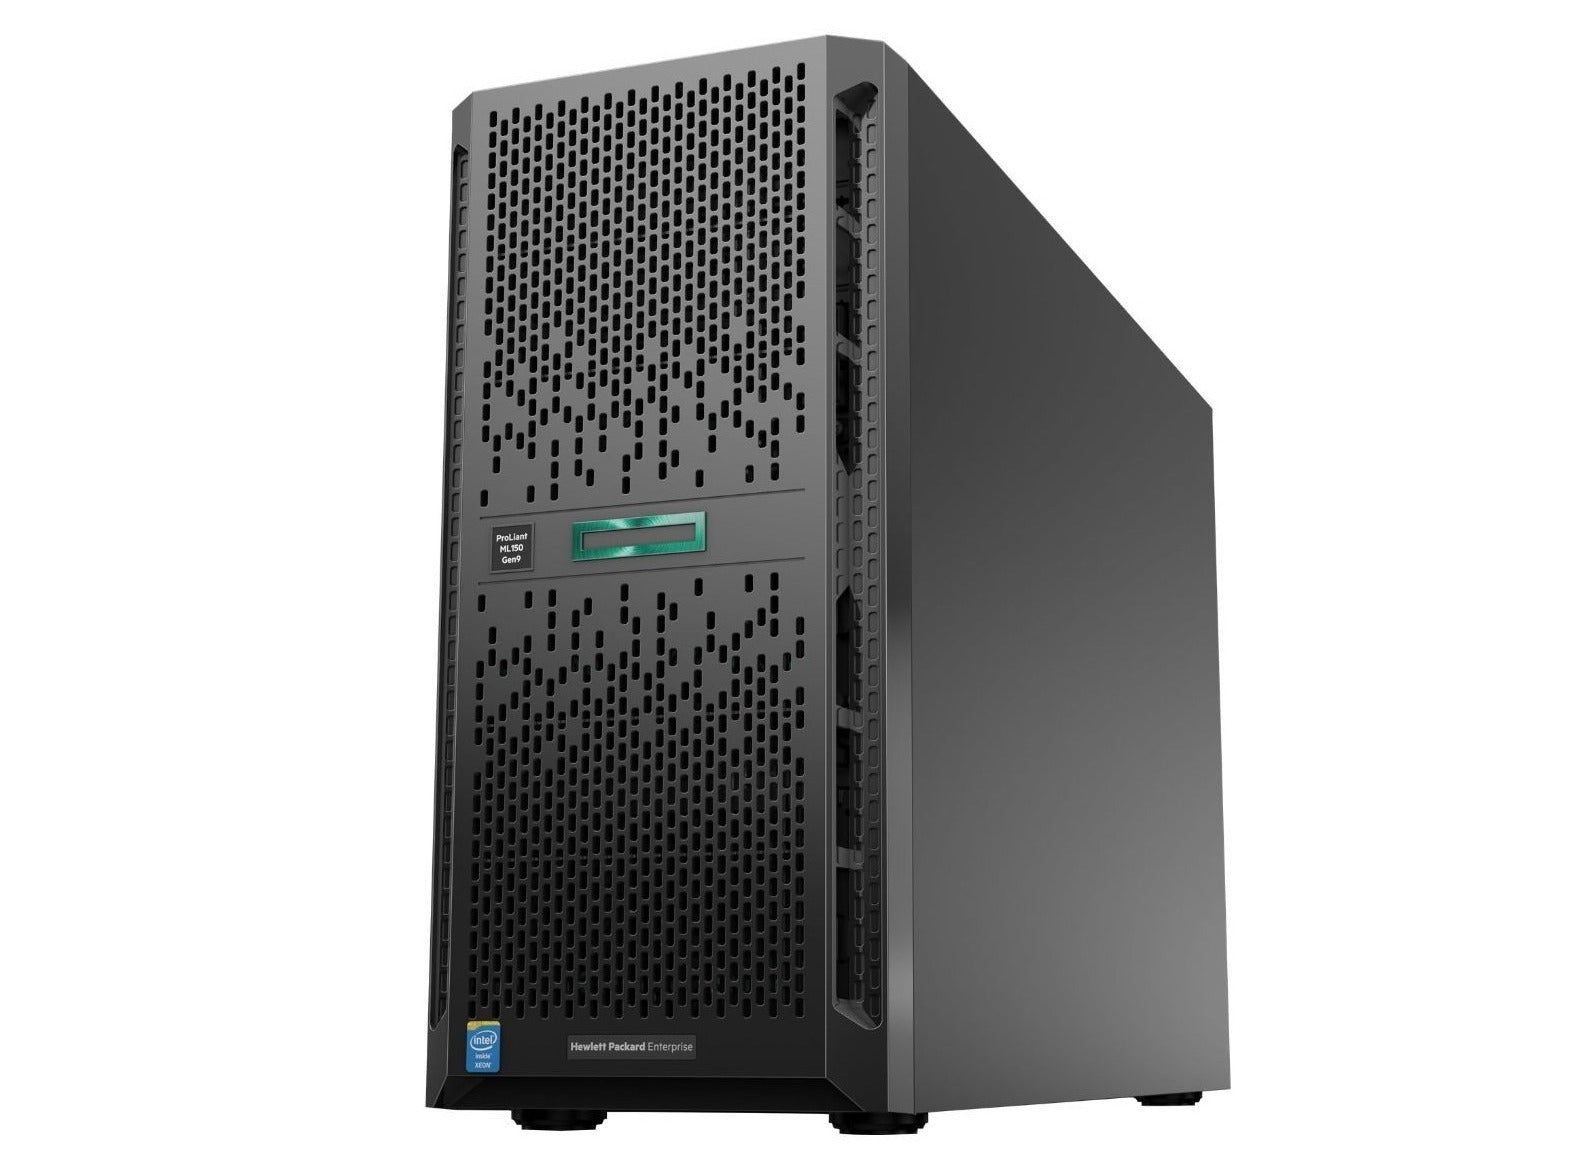 Refurbished HPE ProLiant ML150 Gen9 Configure to Order Tower Server